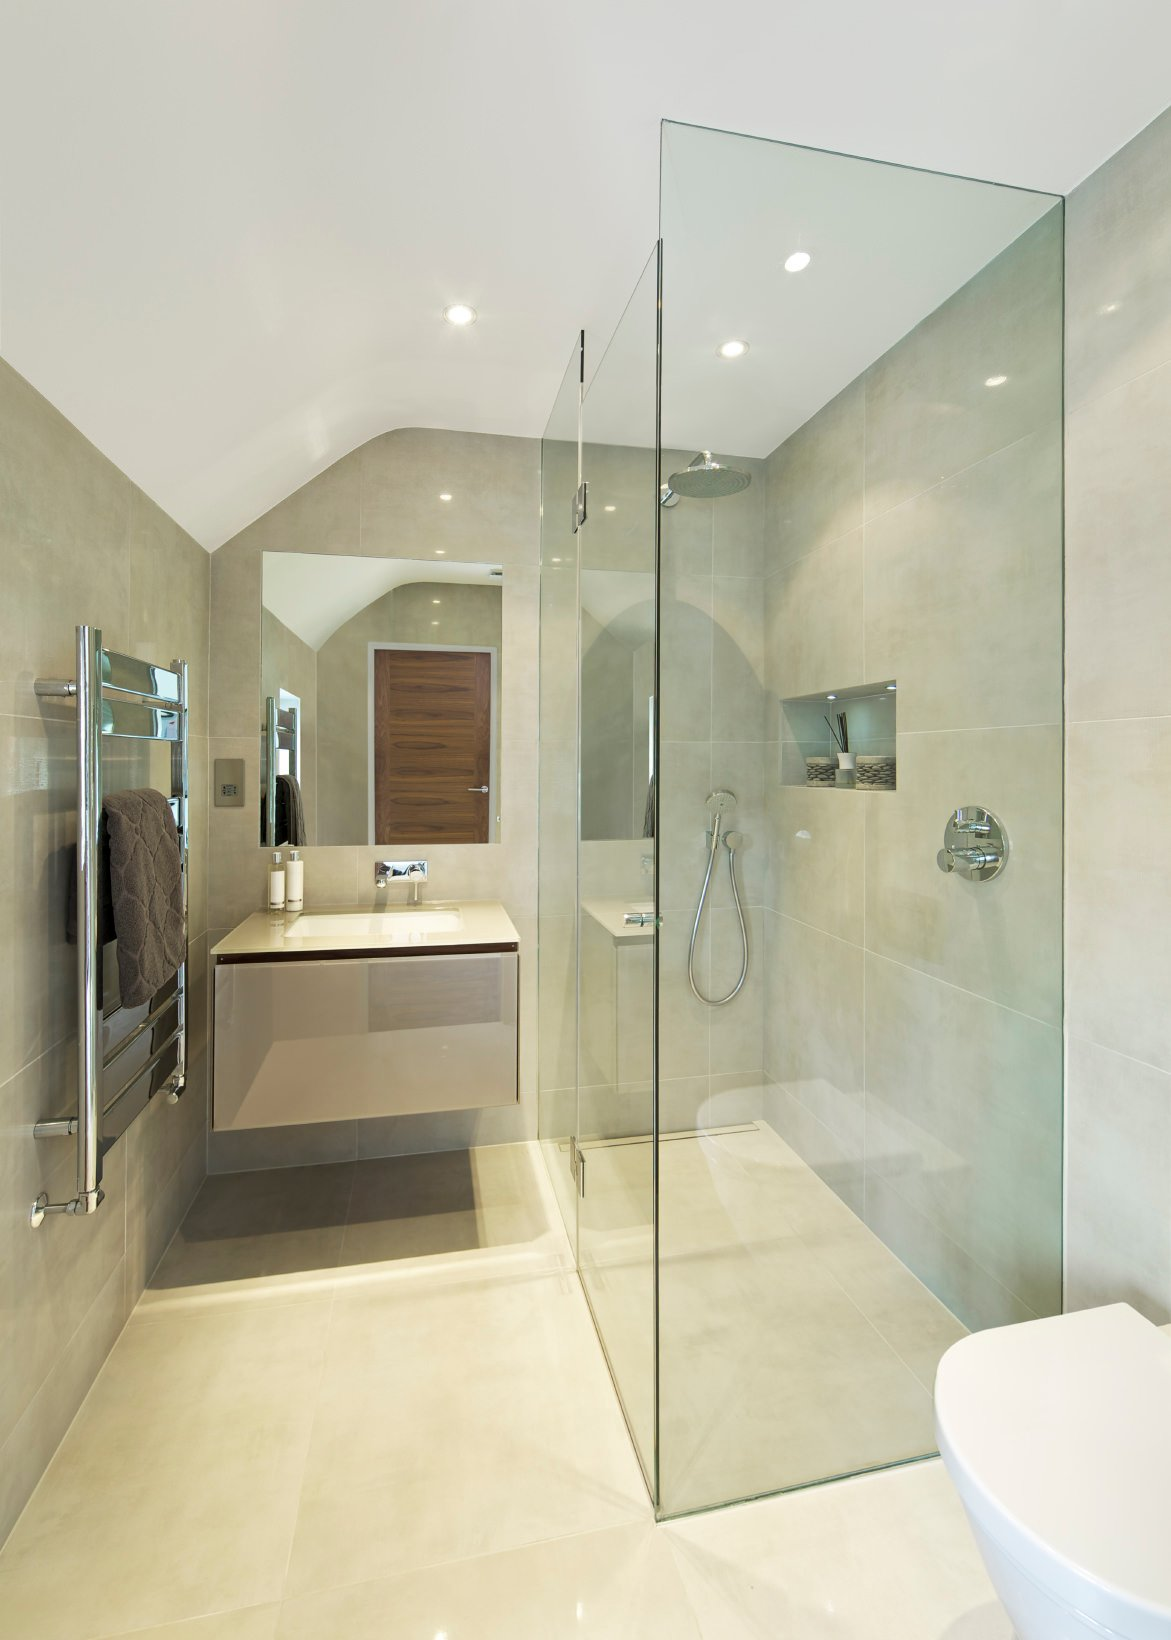 Frameless mirror and frameless shower cubicle make this bathroom look more spacious than it is. Add to it the neutral toned tiles and you have a stylish, fresh bathroom on your hands.